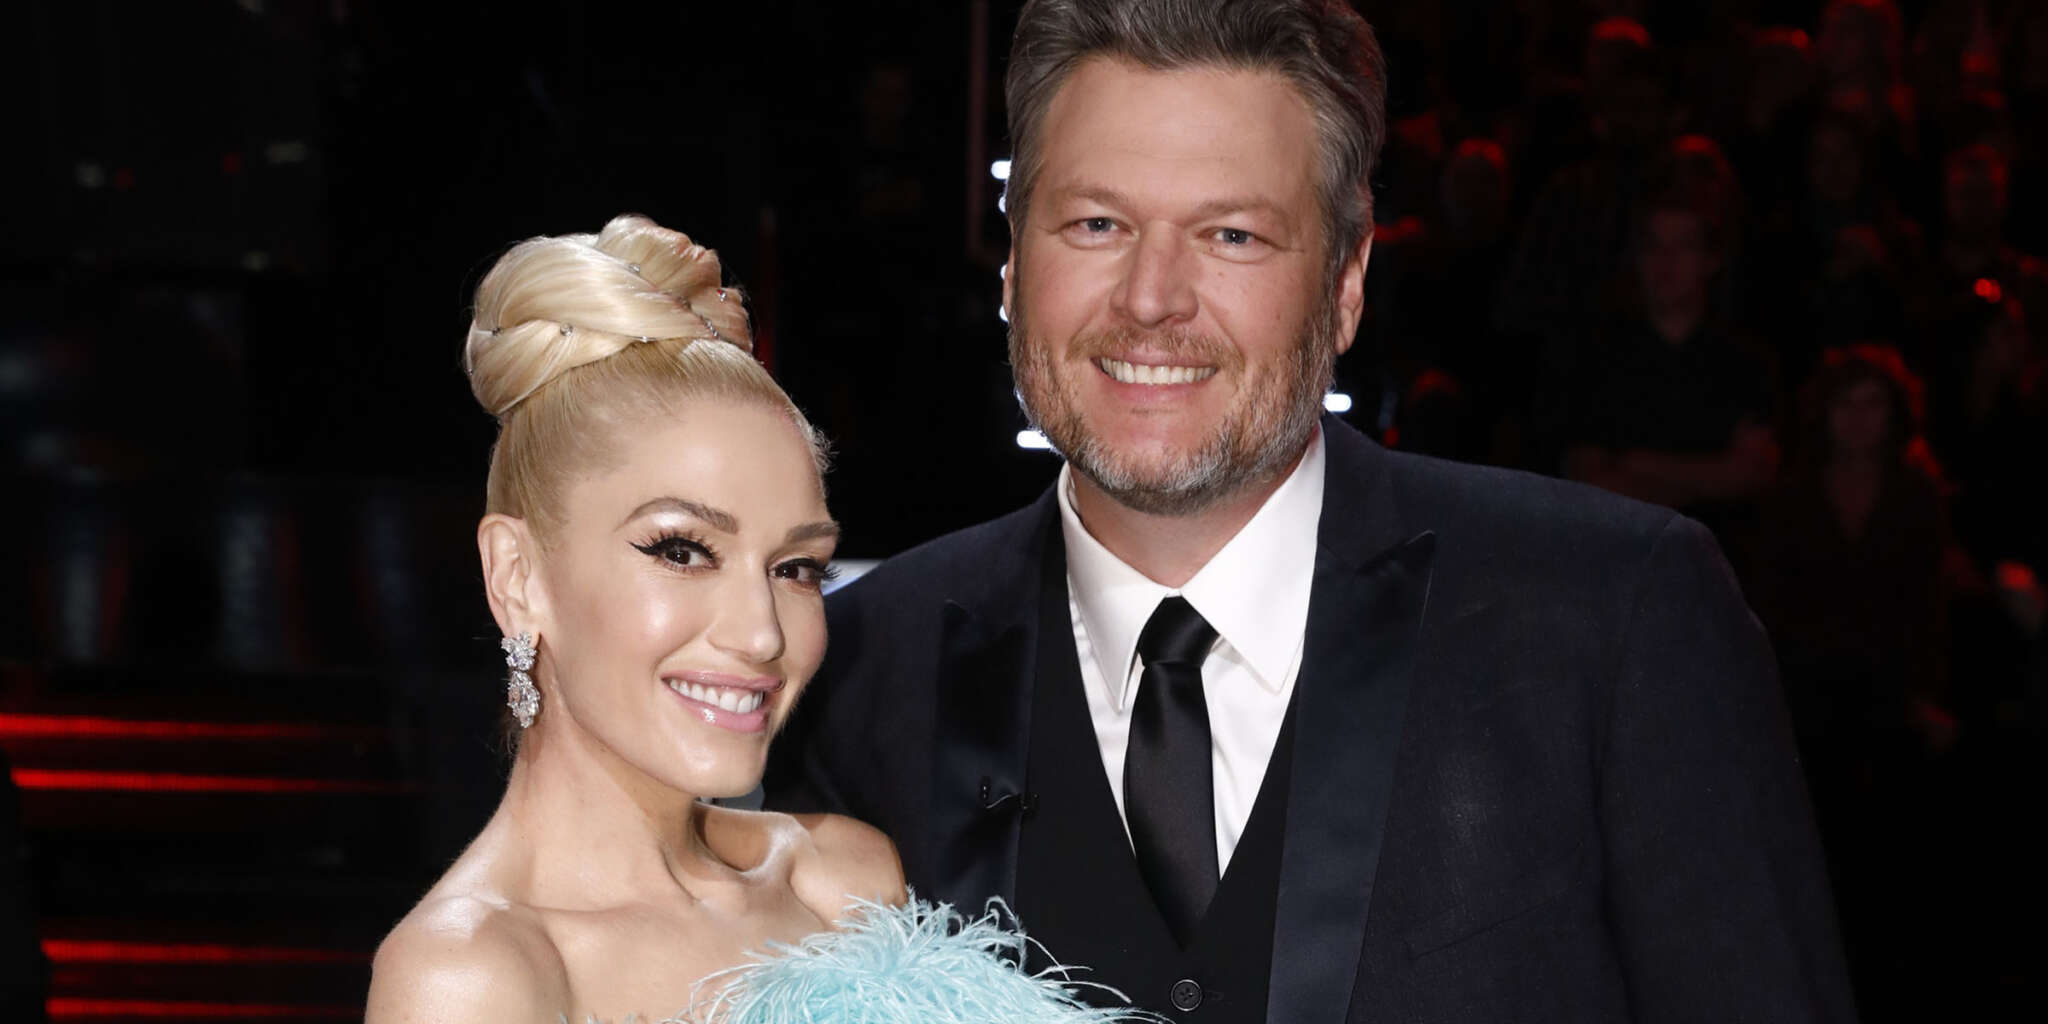 Gwen Stefani Reveals Exclusive Details About Her Engagement – Says That Both She And Blake Shelton 'Started Bawling!'